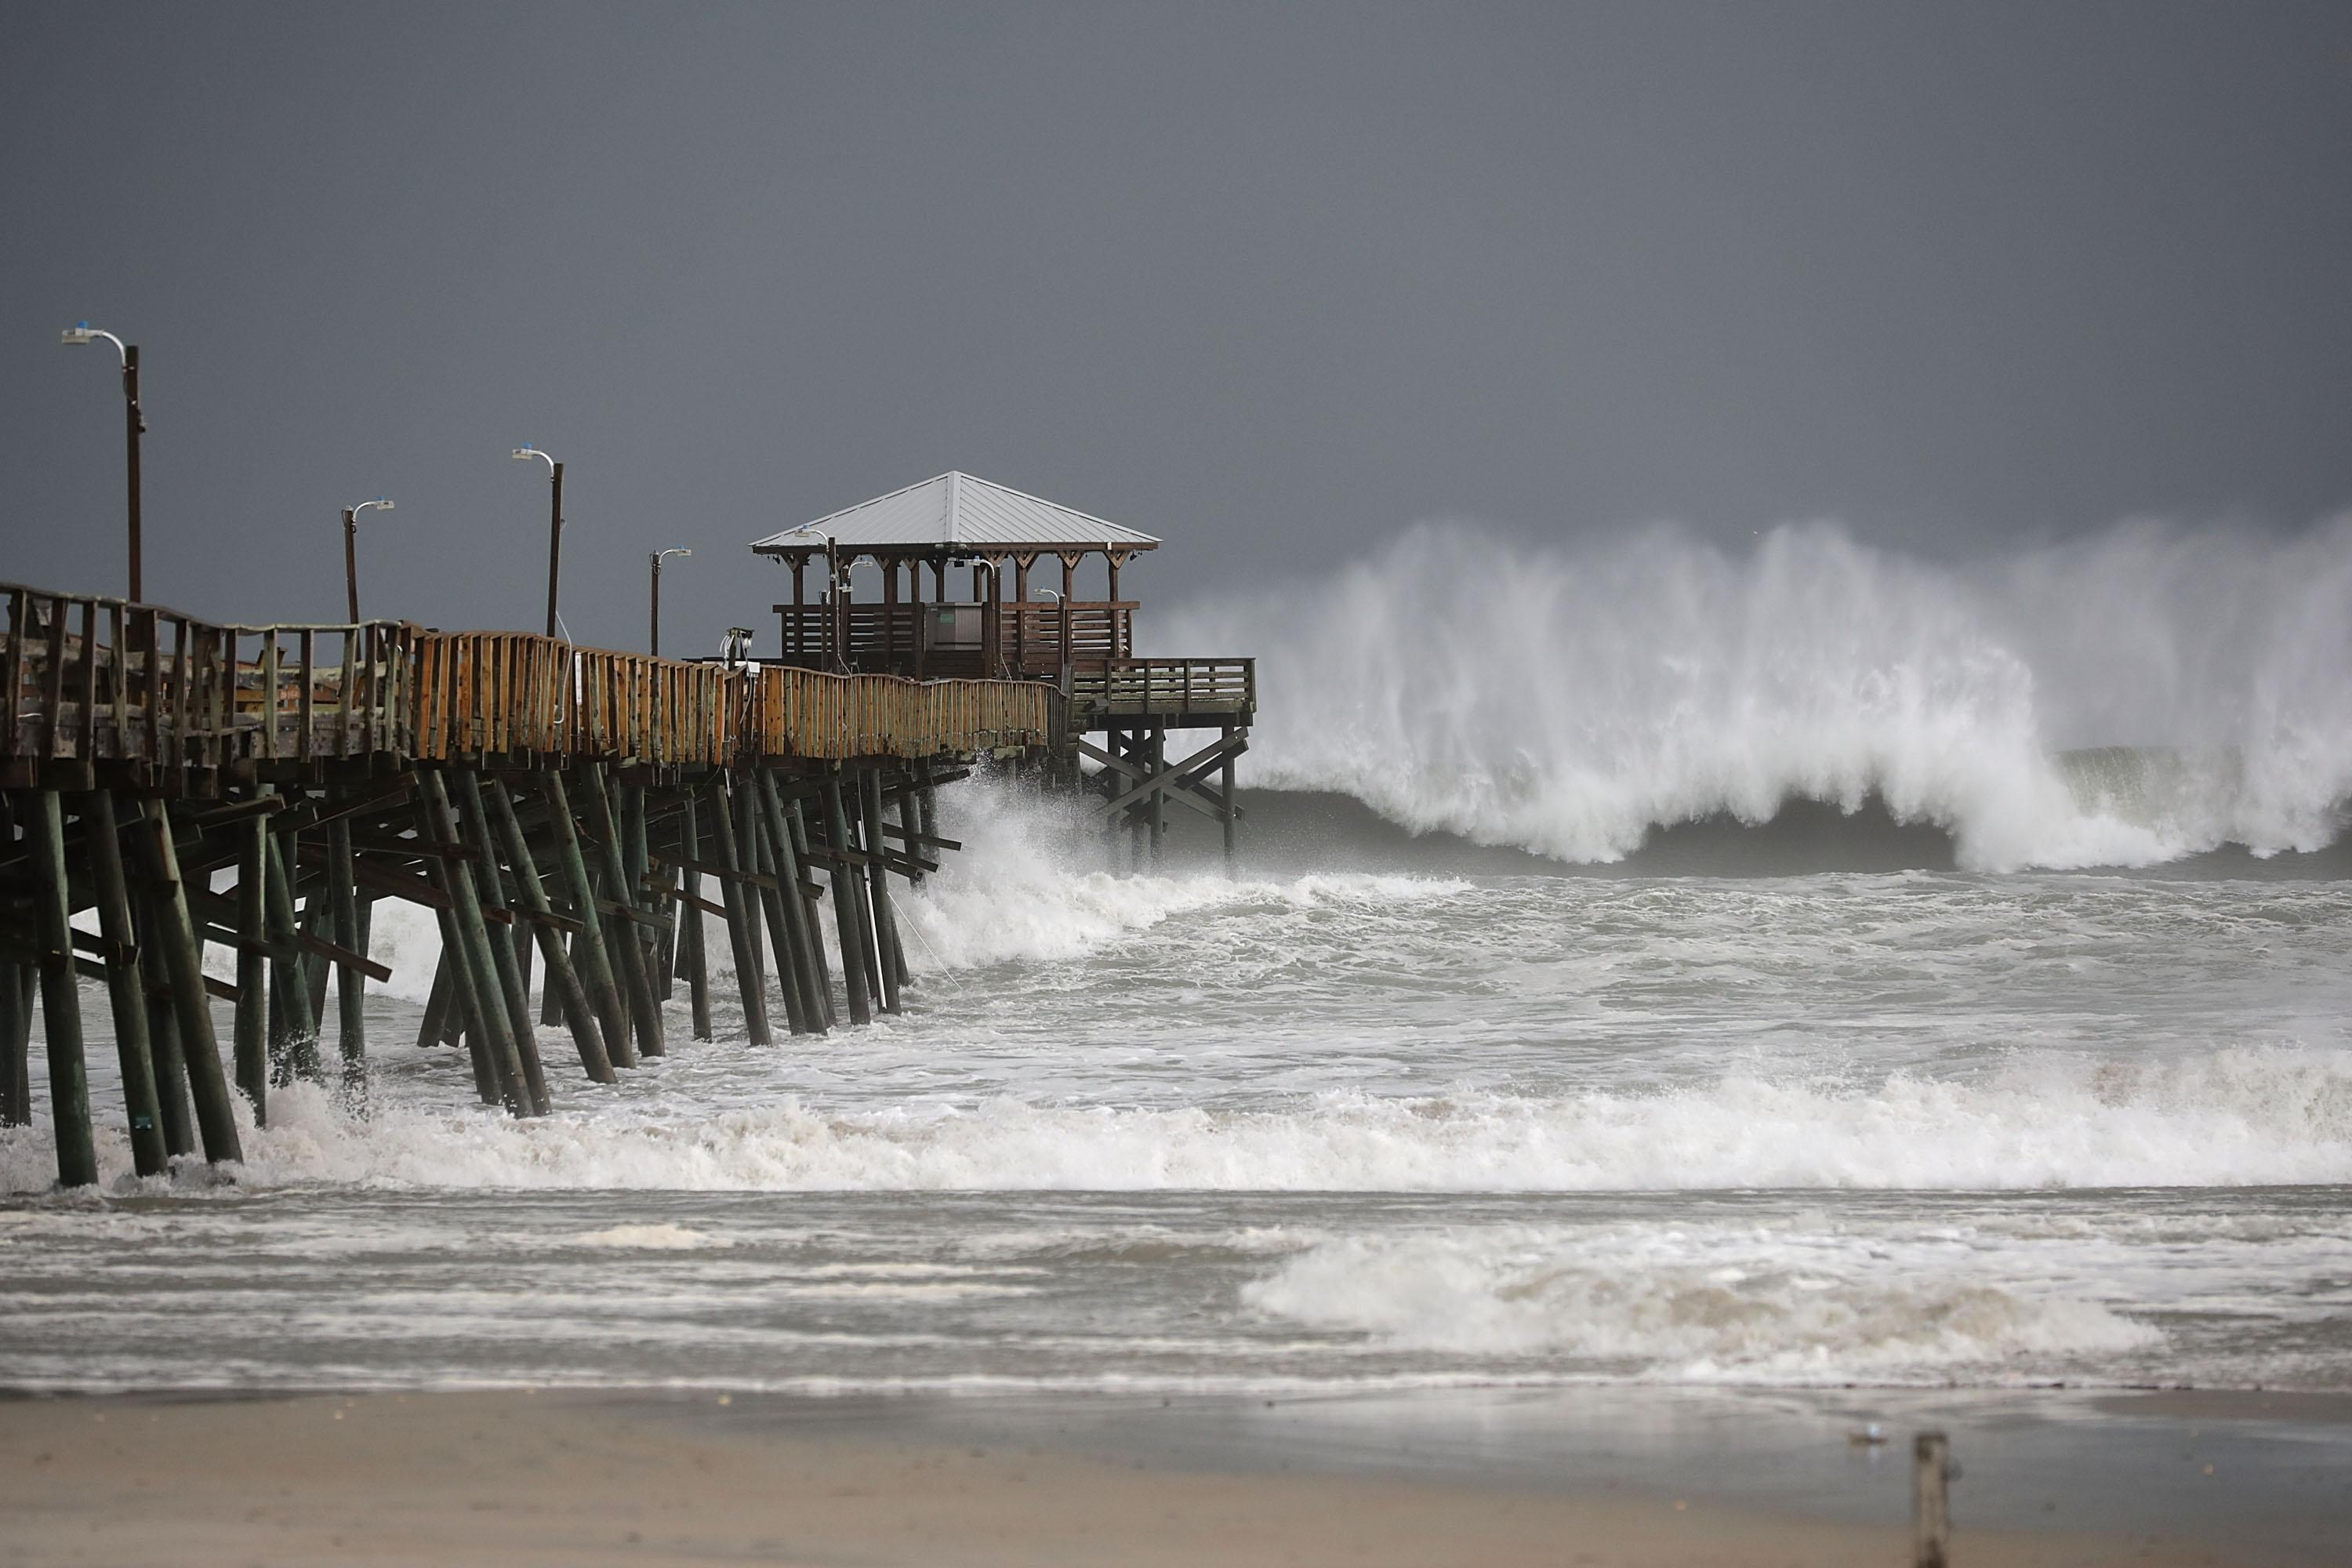 High waves crash around a pier in front of a gray, stormy sky.